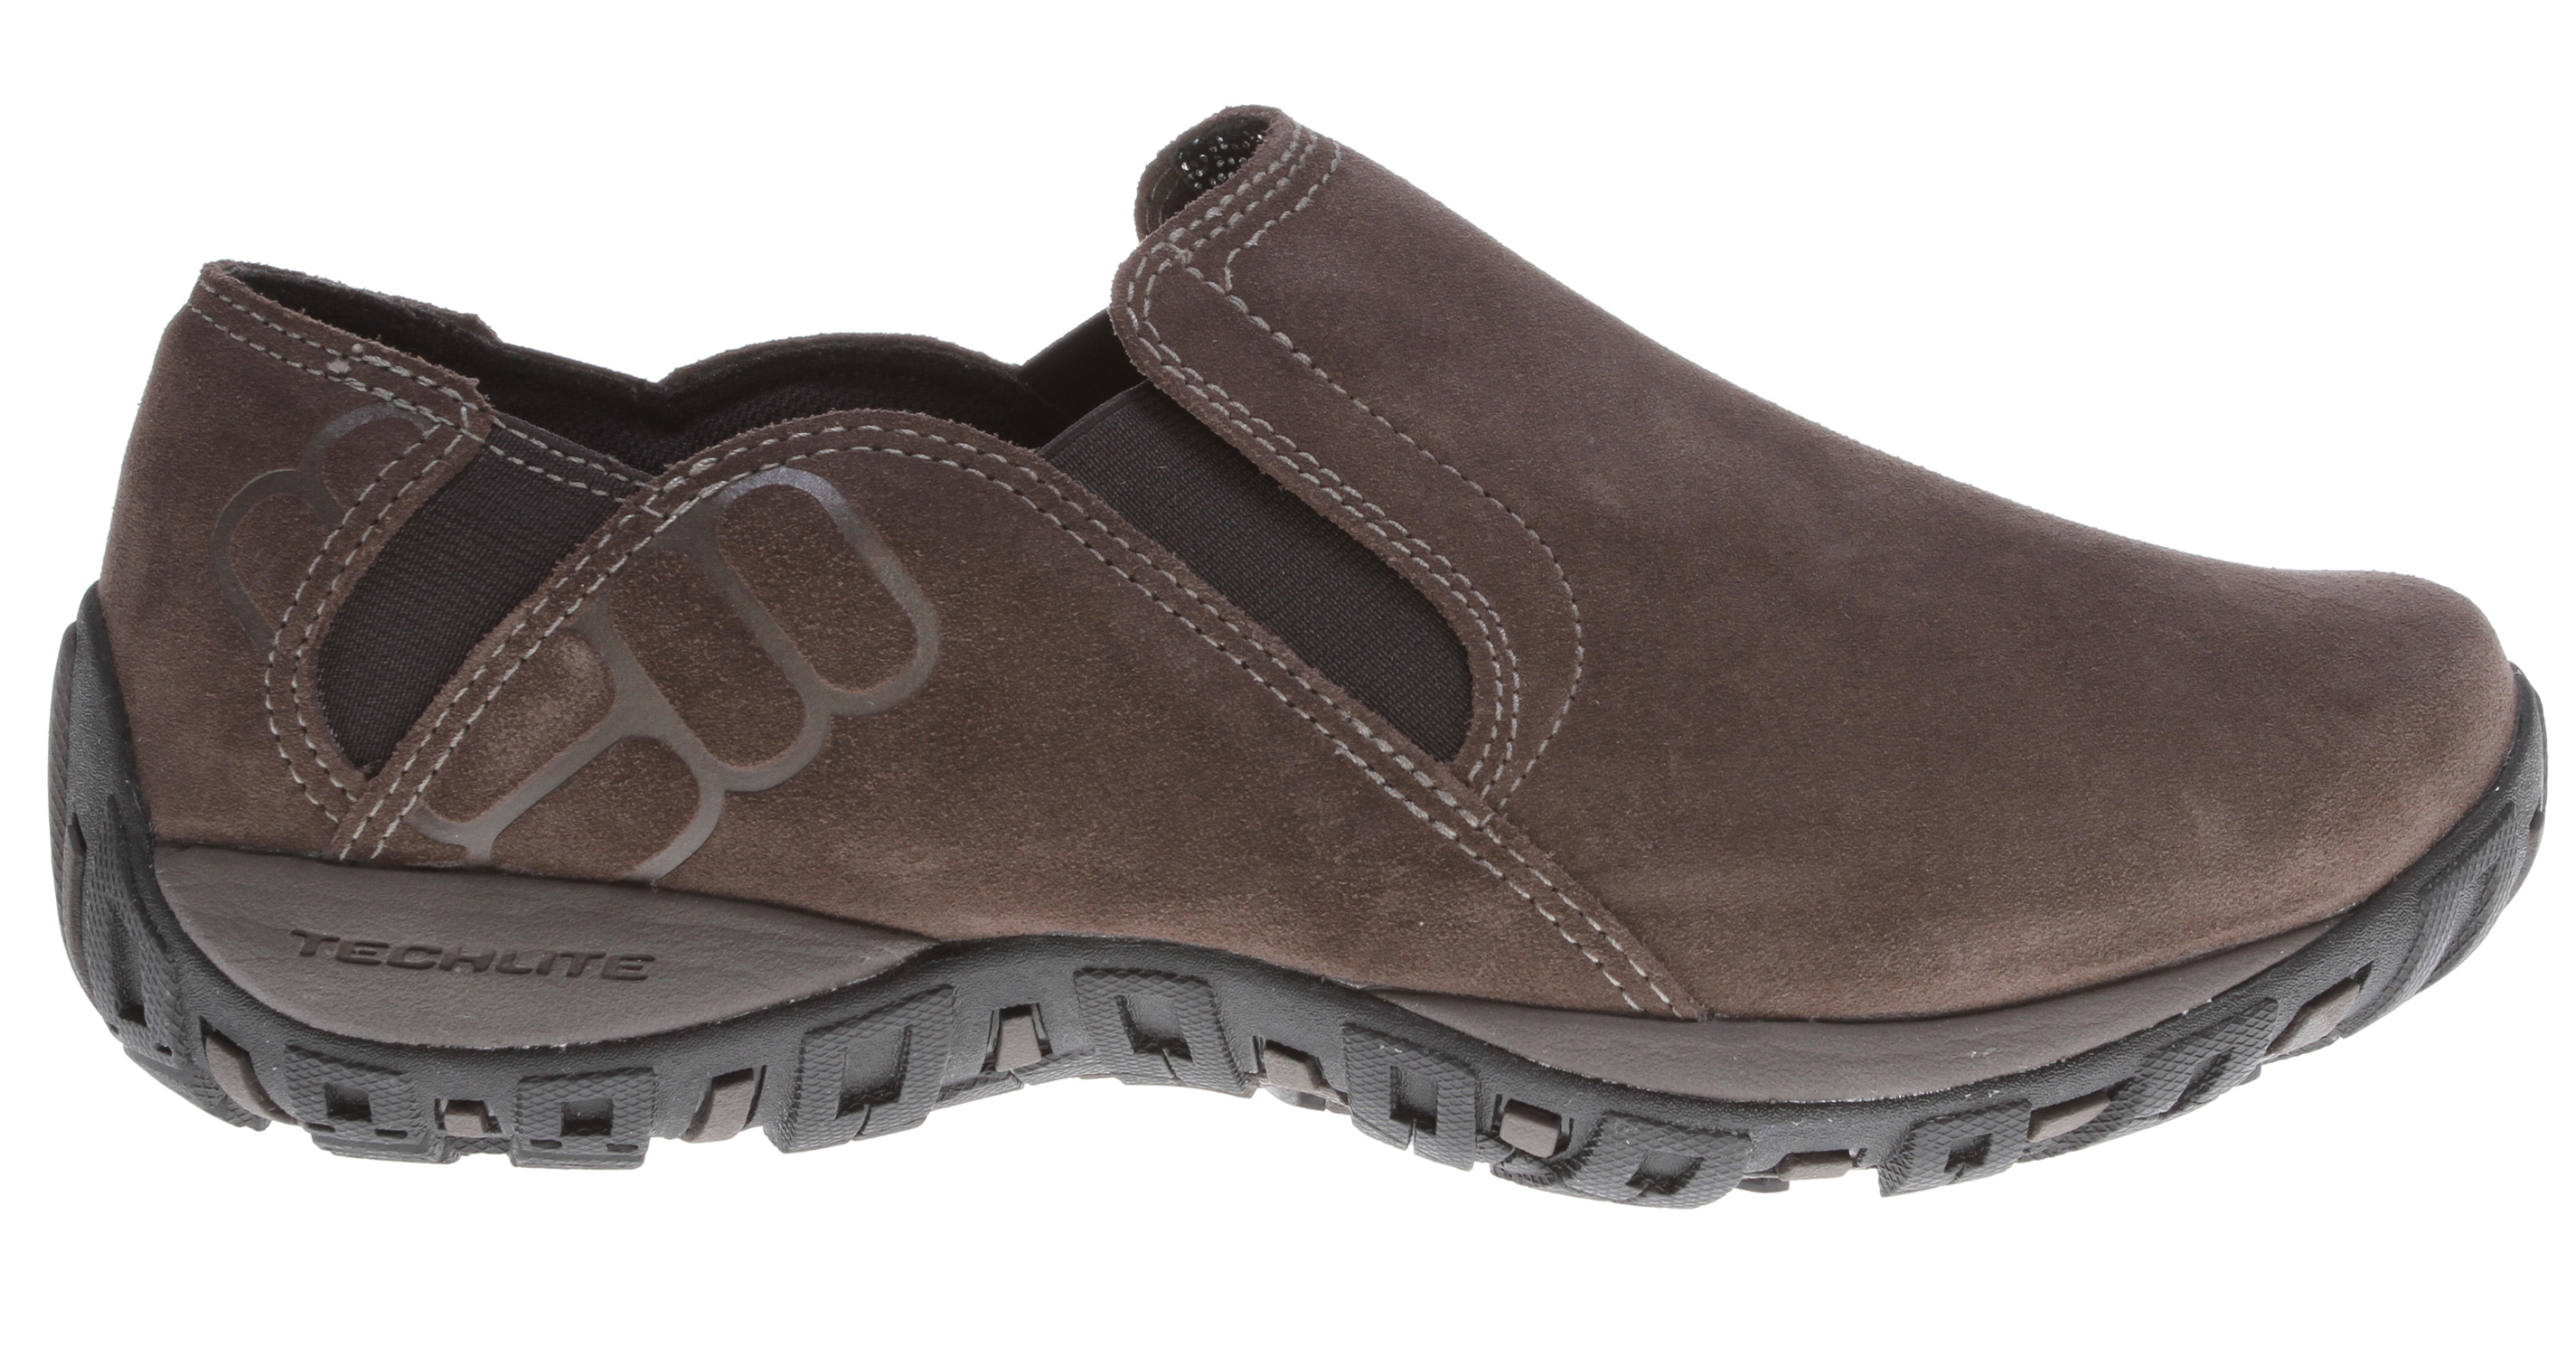 This convenient suede shoe is lined with Omni-Heat thermal reflective for an easy-on-easy-off solution that keeps feet warm in cold conditions while providing lightweight support and superior.Key Features of the Columbia Pathgrinder Moc Omni-Heat Shoes: OMNI-HEAT Thermal Reflective Make Your Own Heat OMNI-GRIP Hold Tight on Any Terrain TECHLITE Lightweight Cushioning and Support Omni-Heat thermal reflective Omni-Grip high traction rubber Full length Techlite midsole for lightweight cushioning and comfort Full suede waterproof leather Midfoot outsole wrap and support bar to add torsional rigidity underfoot Independent lug patterns for traction on hard and soft surfaces Waterproof materials and construction method Weight: size 9, 1/2 pair = 13.35 oz/378 g Imported UPPER: suede waterproof leather MIDSOLE: Techlite technology OMNI-GRIP OUTSOLE Full length high traction rubber - $59.95